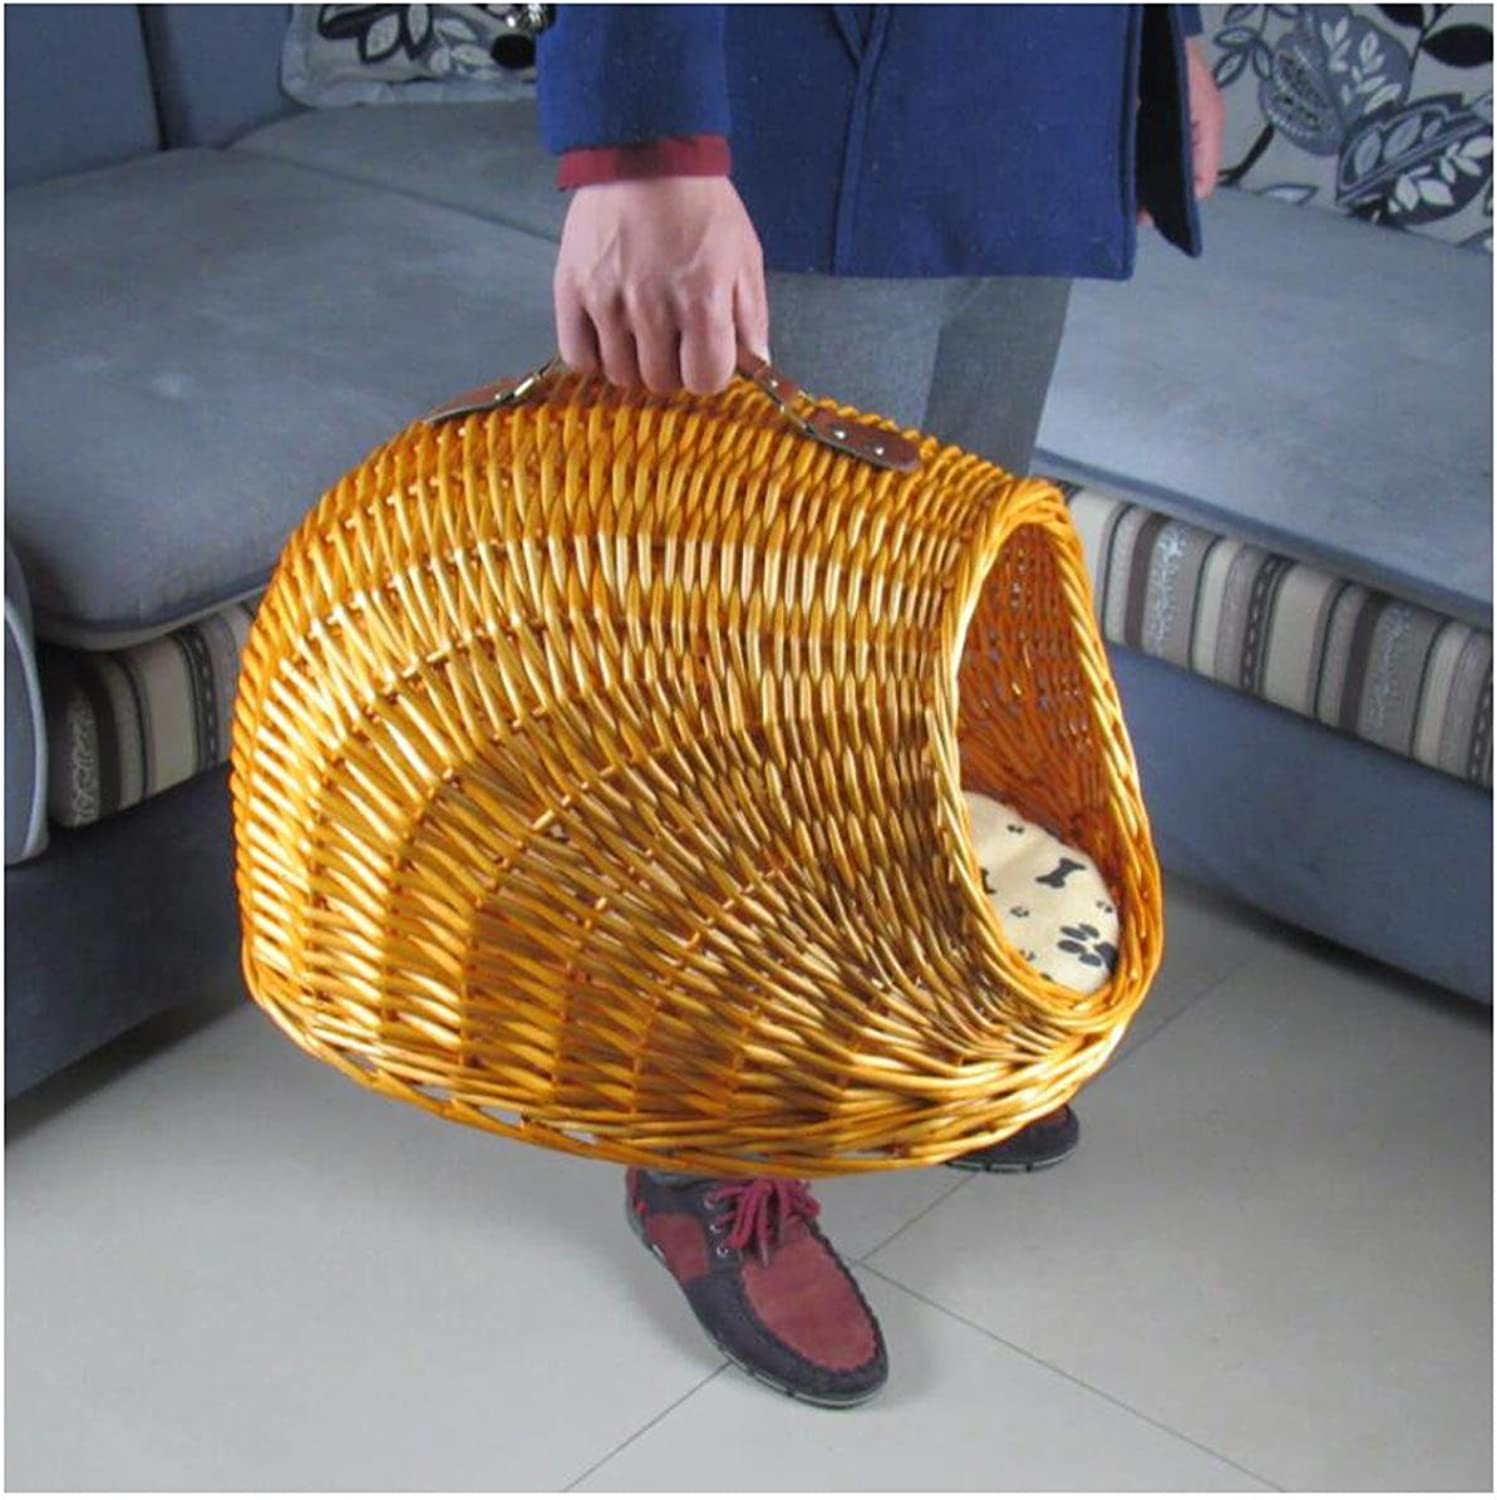 Heruai Rattan Willow Pure Handmade Cat Lap Detachable Dog Bed House Summer Handmade Cat Small House Small Cage Cat Bed Ventilation